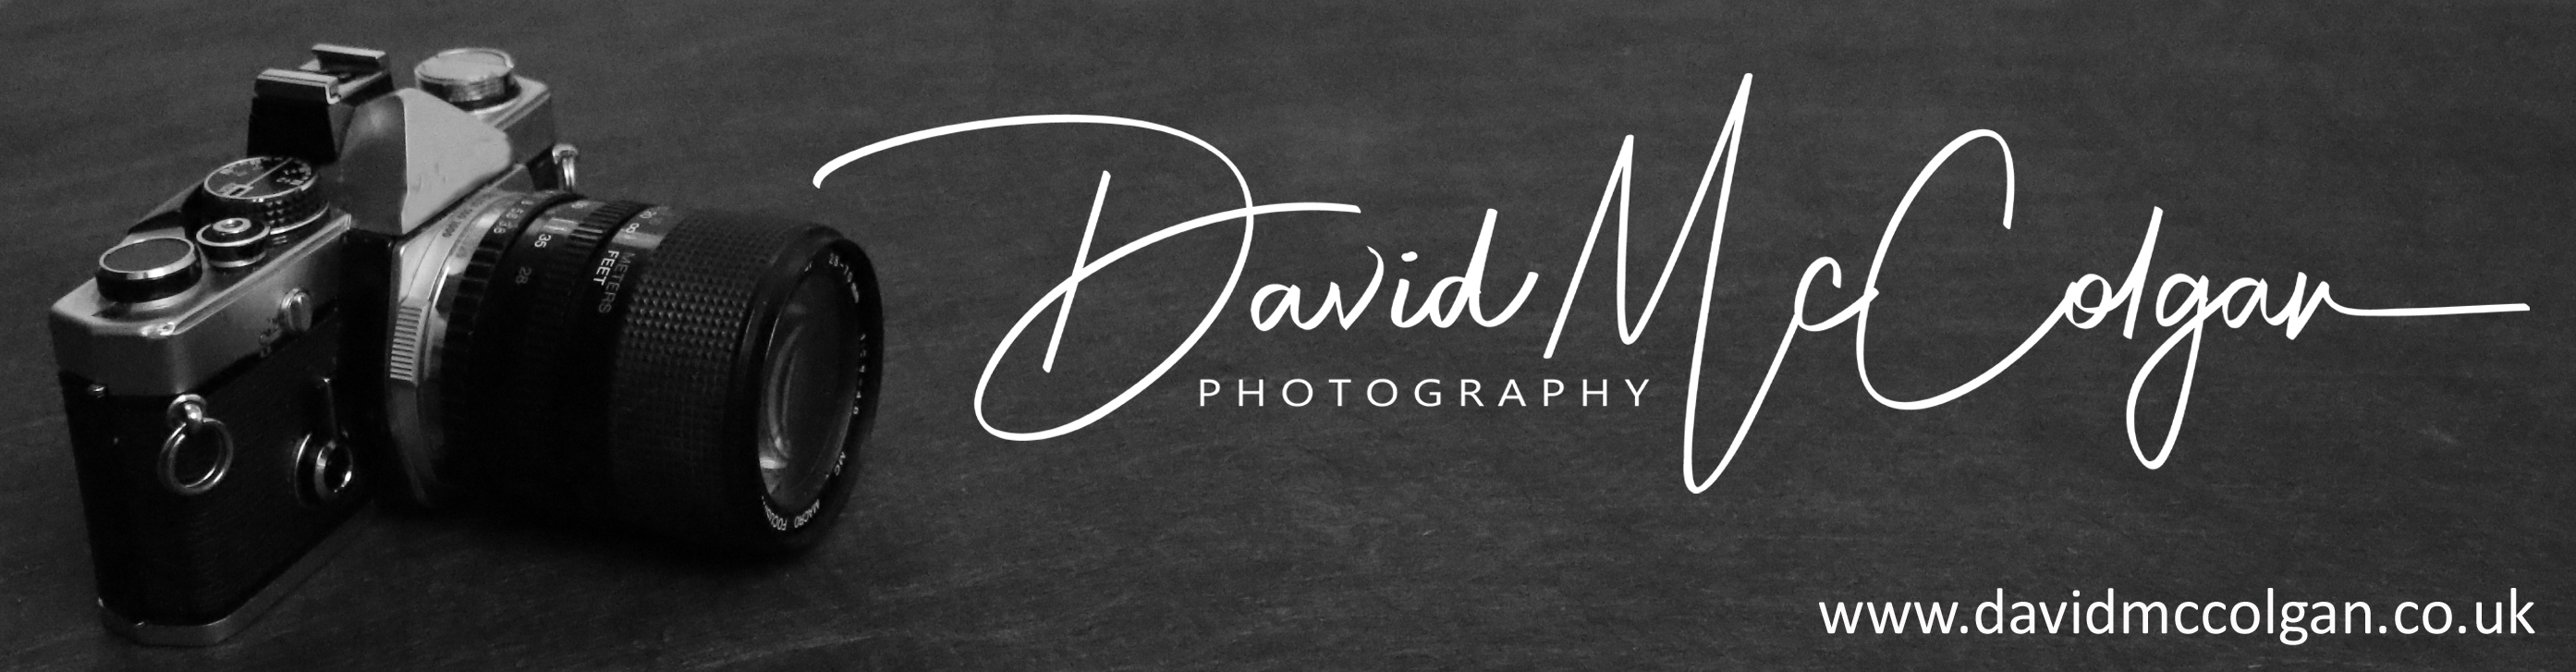 David McColgan Photography